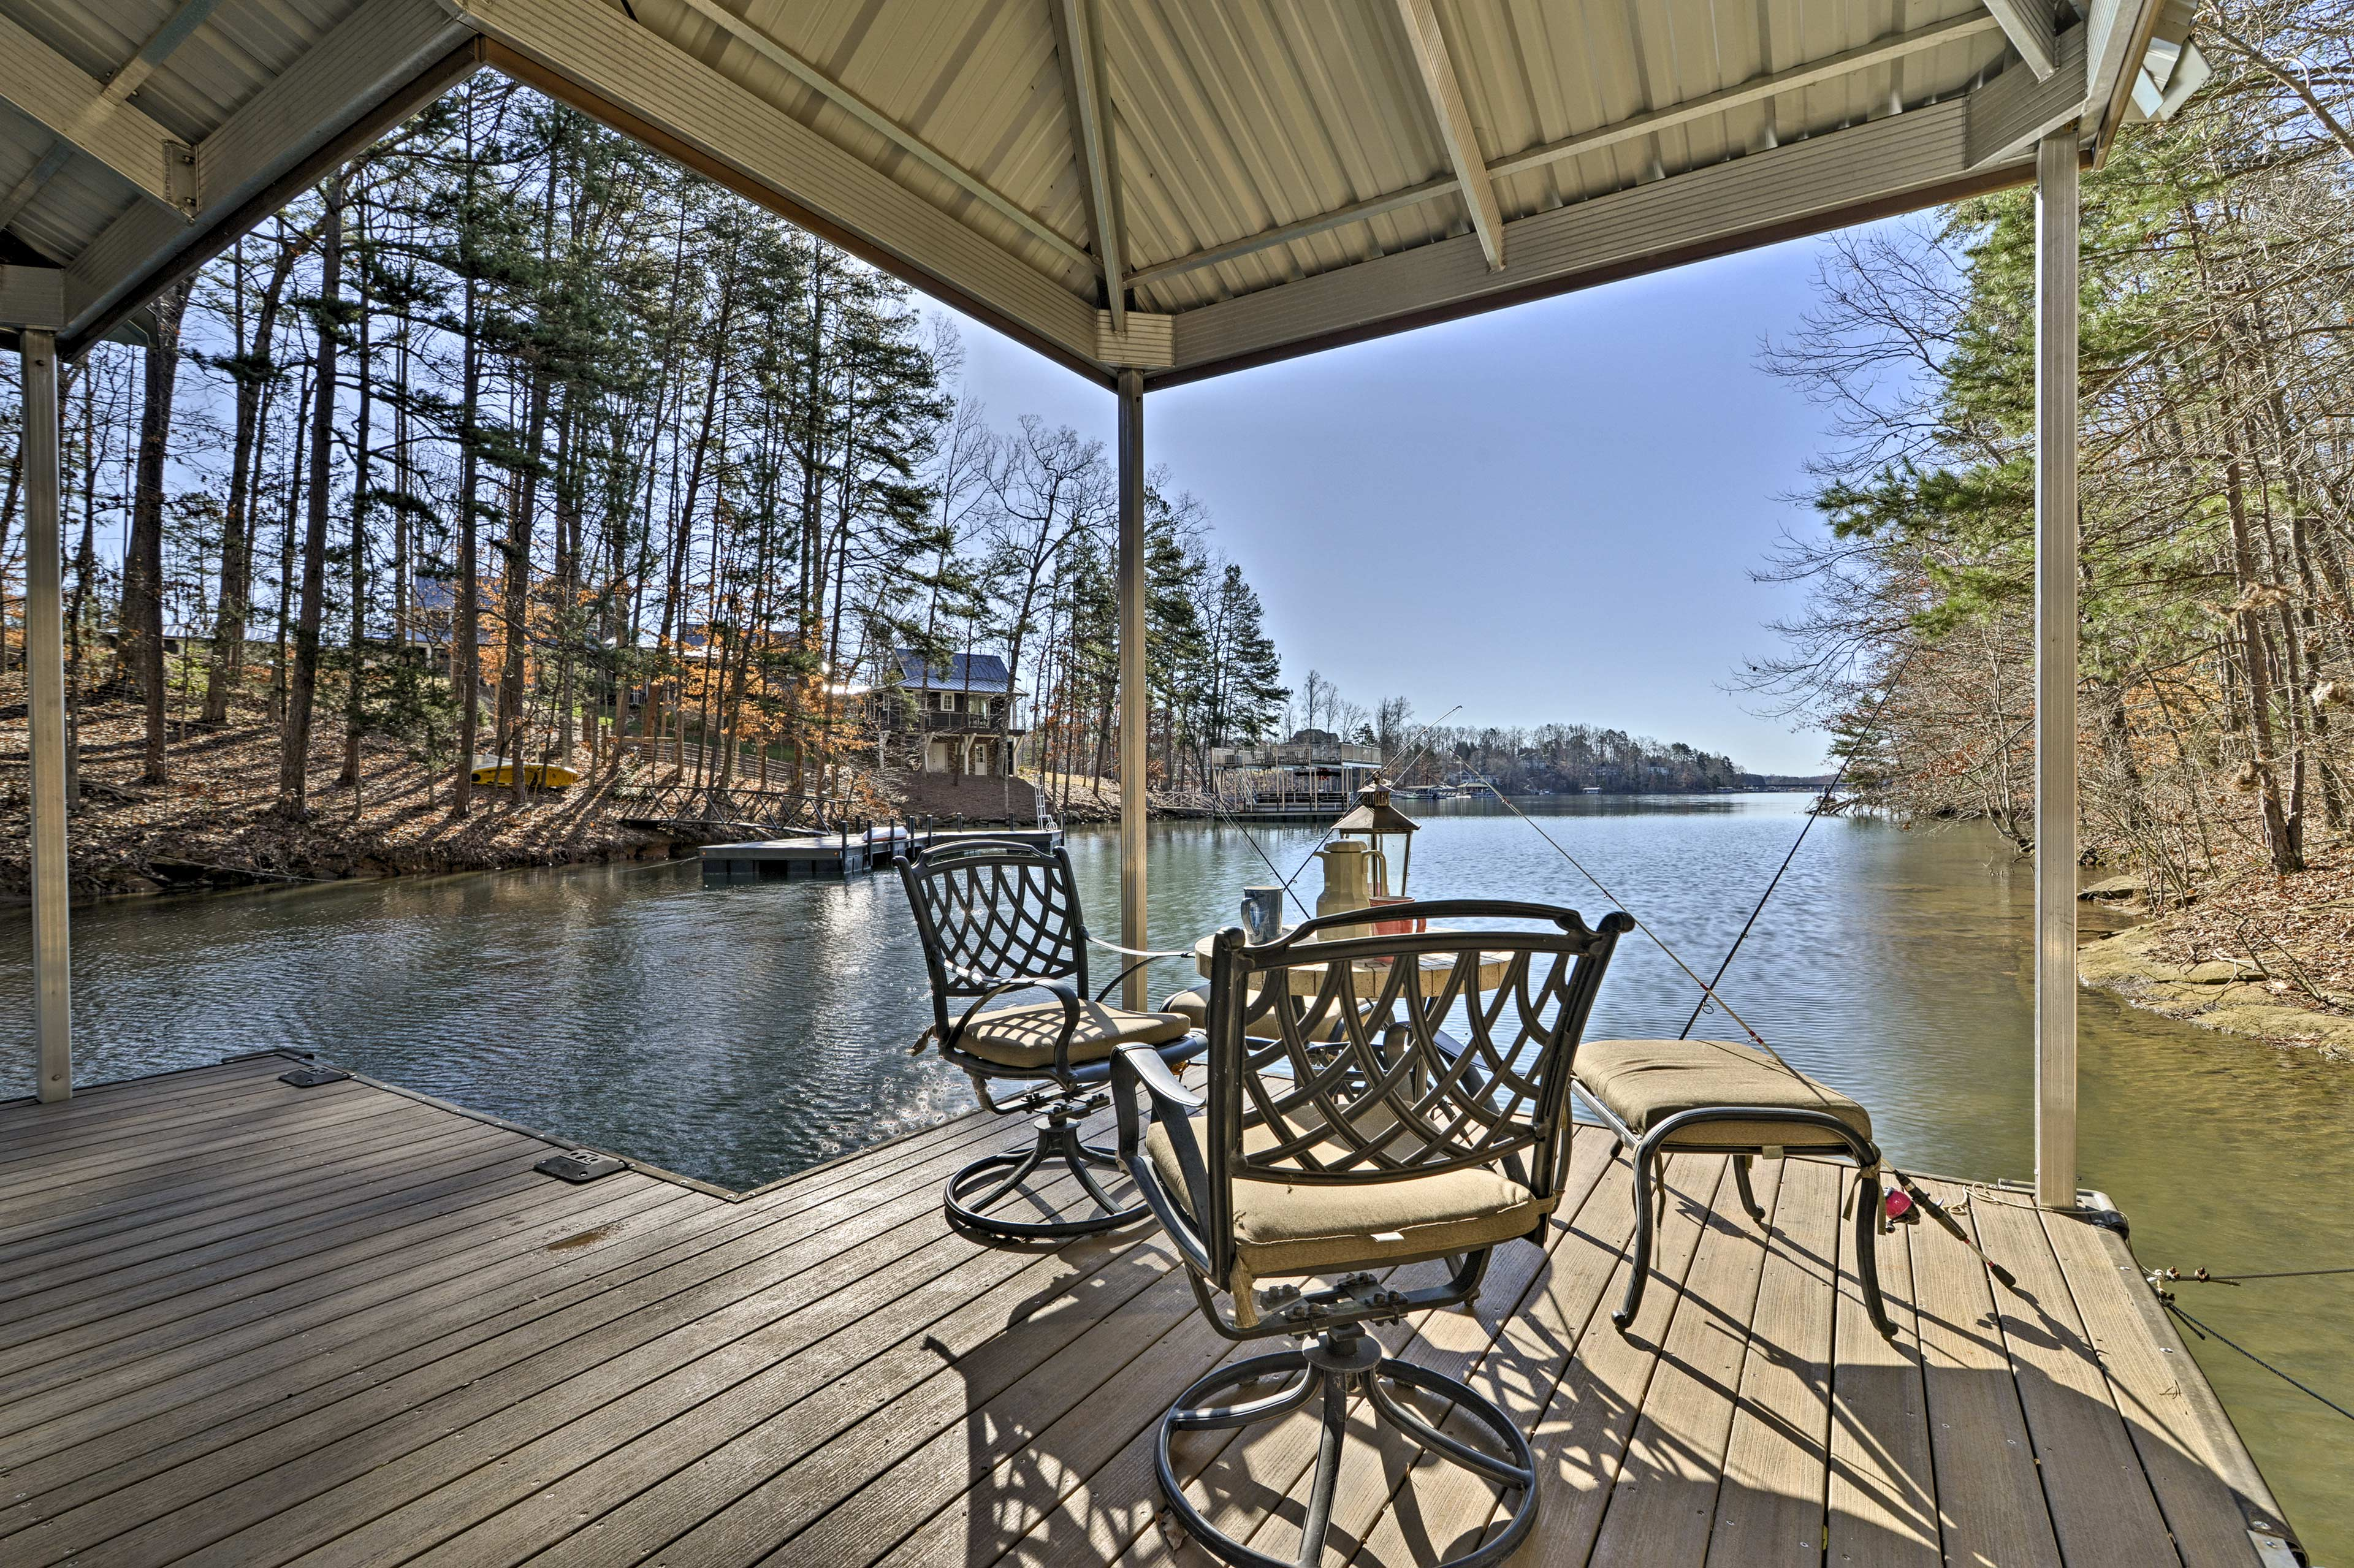 Sit down by the dock to reel in some fish.